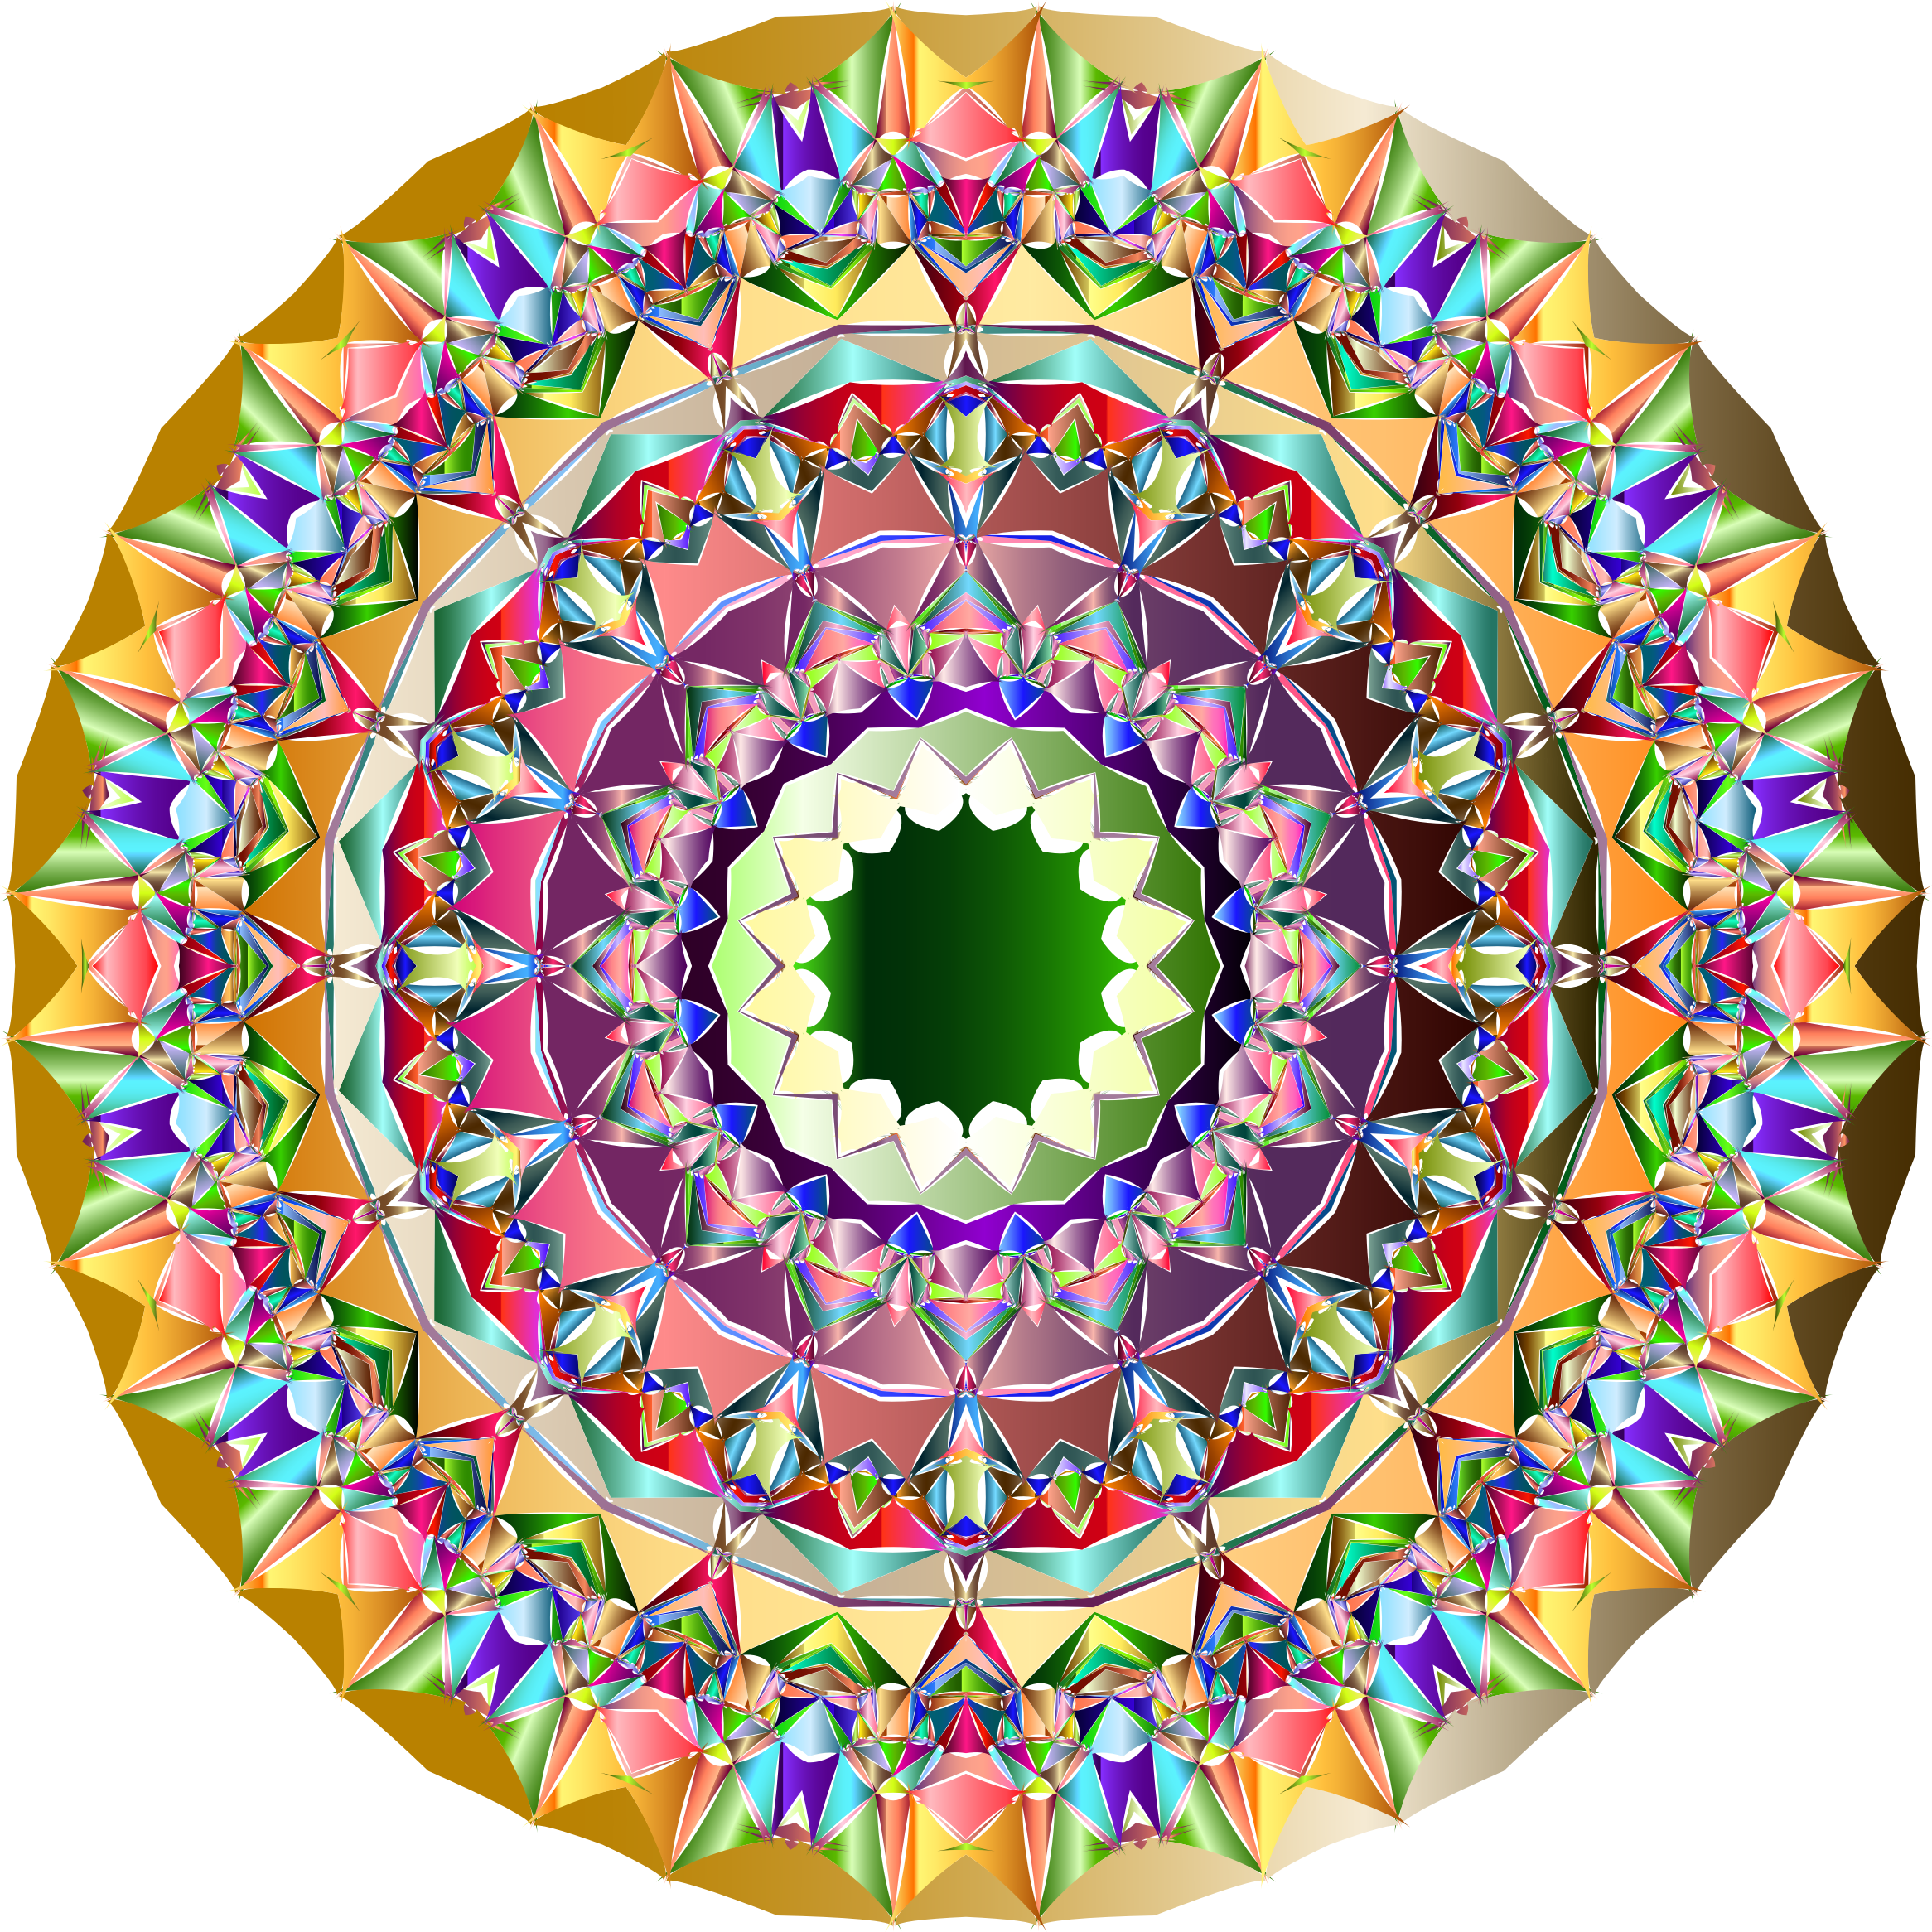 Abstract Geometric Mandala 2 by GDJ